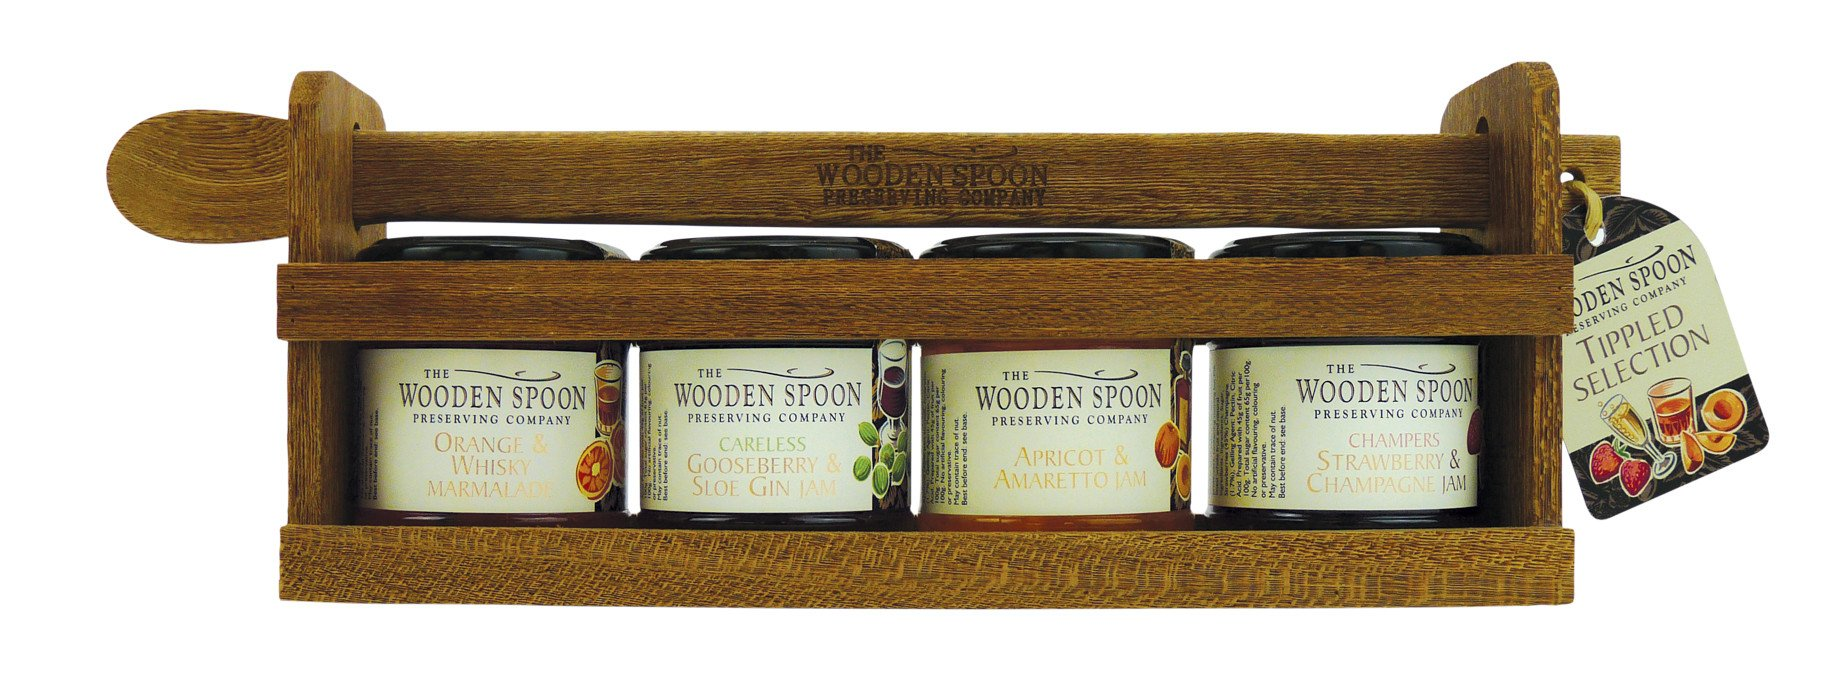 Tippled Selection:Strawberry & Champagne Extra Jam, Apricot & Amaretto Extra Jam, Orange & Whisky Marmalade, Gooseberry & Sloe Gin Extra Jam 4 x 113g